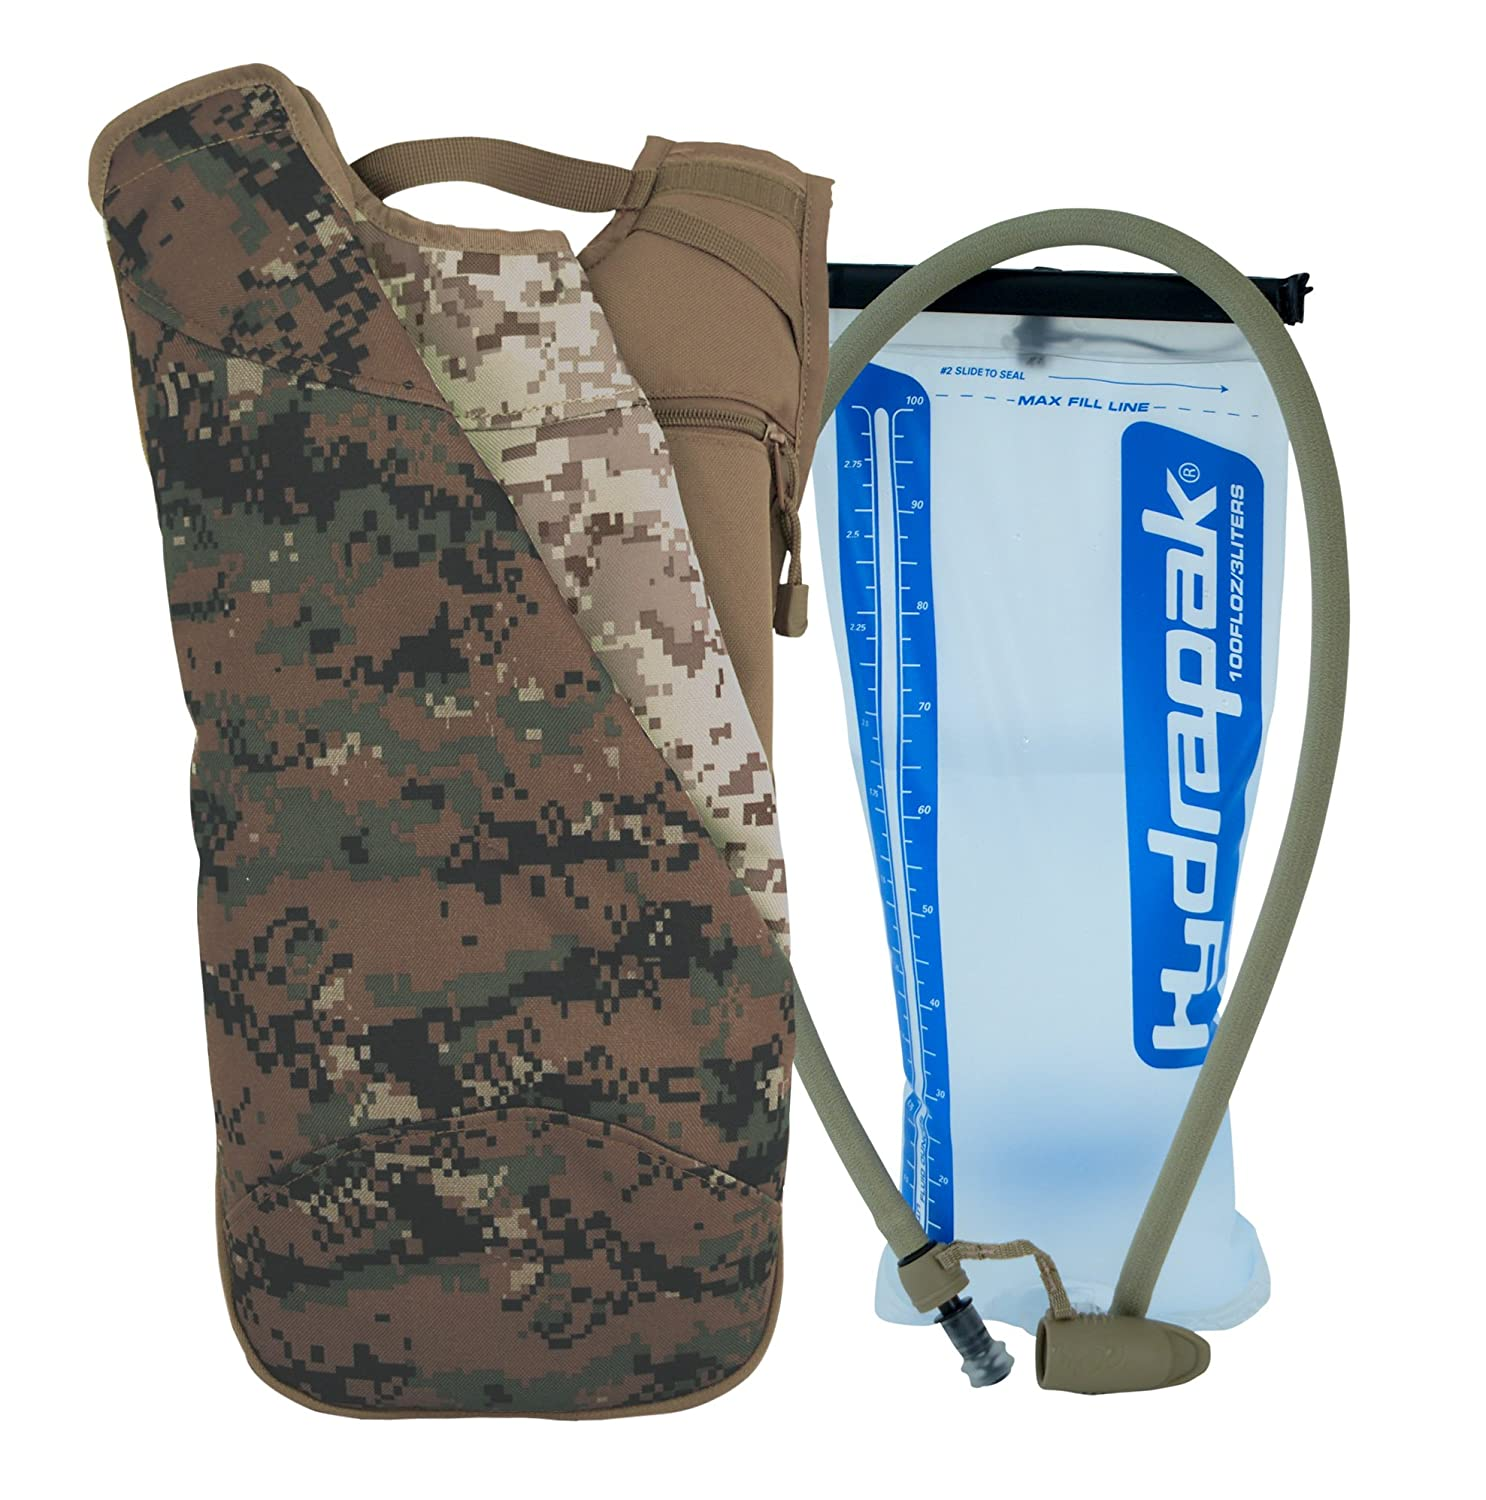 Ditital Camouflage Army Digital Camoufalge Mercury Tactical Gear Code Alpha Chameleon Runners Backpack with 3l Hydrapak Hydration System